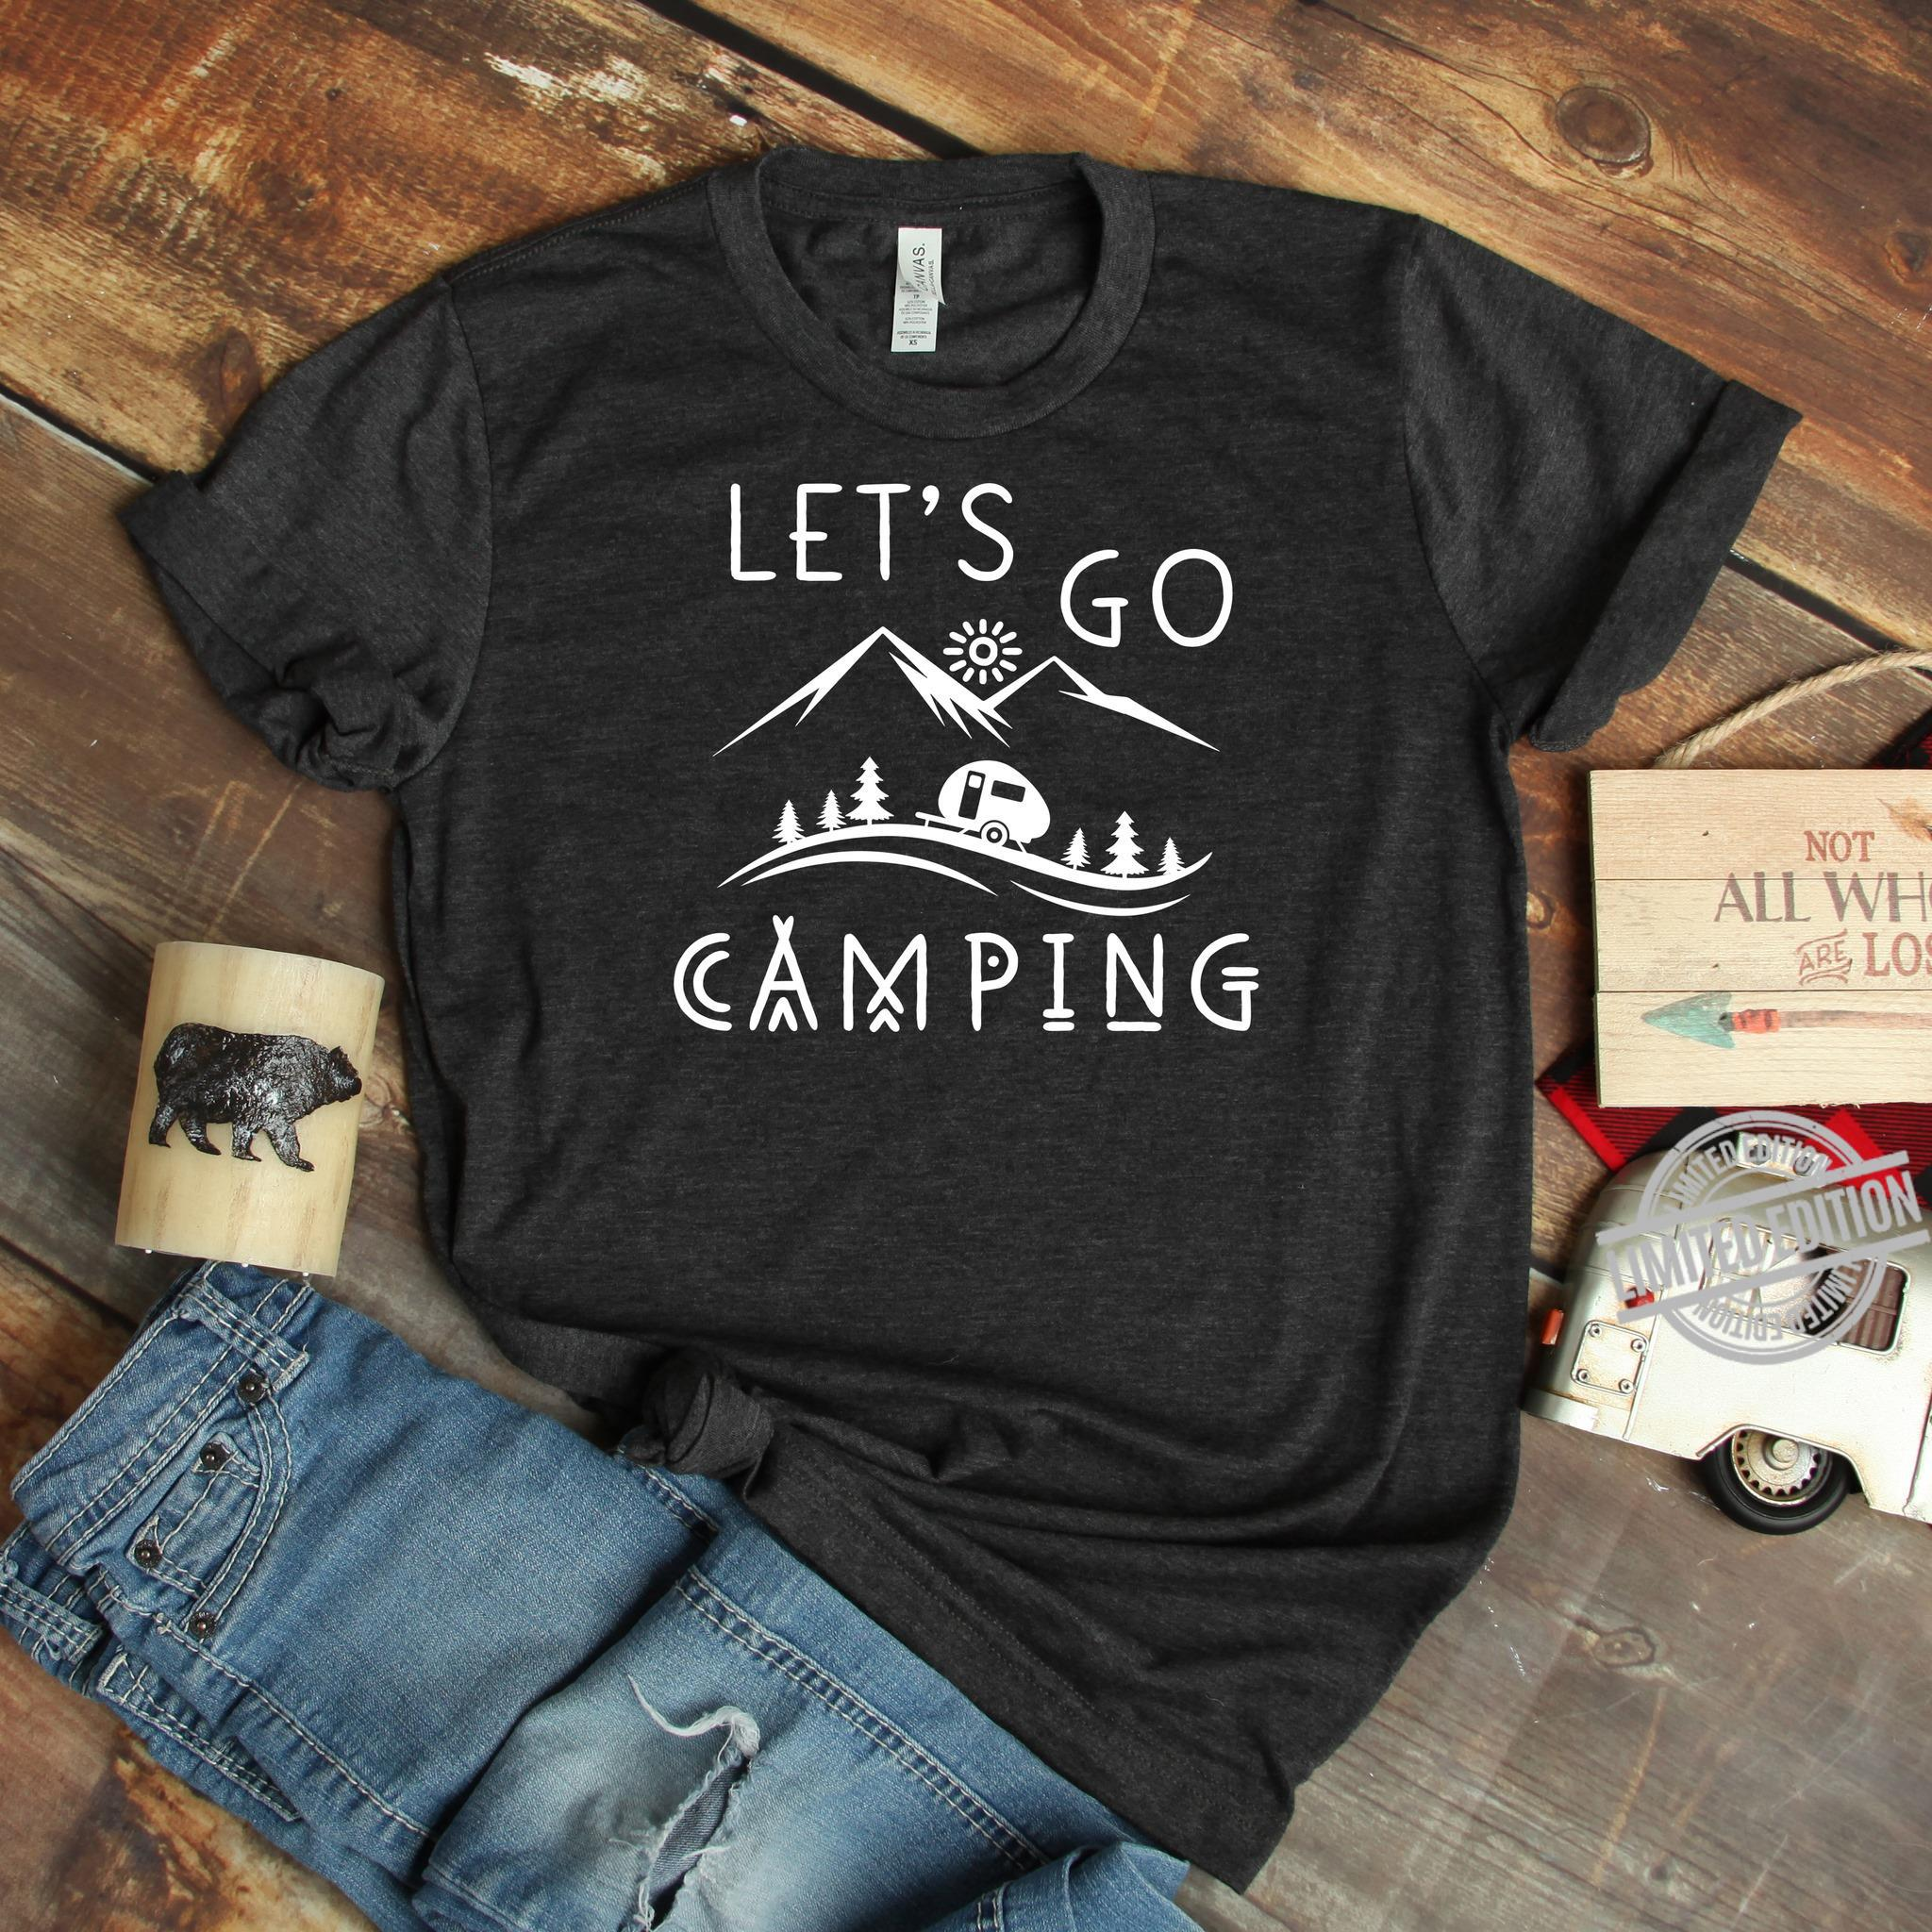 Let's Go Camping Shirt